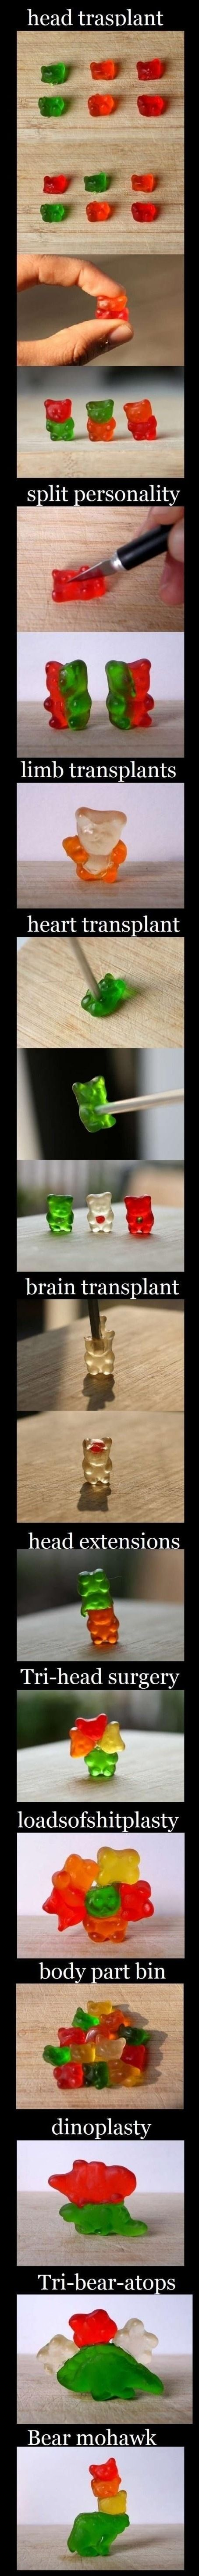 Gummy bear madness!  this just made me laugh so hard.